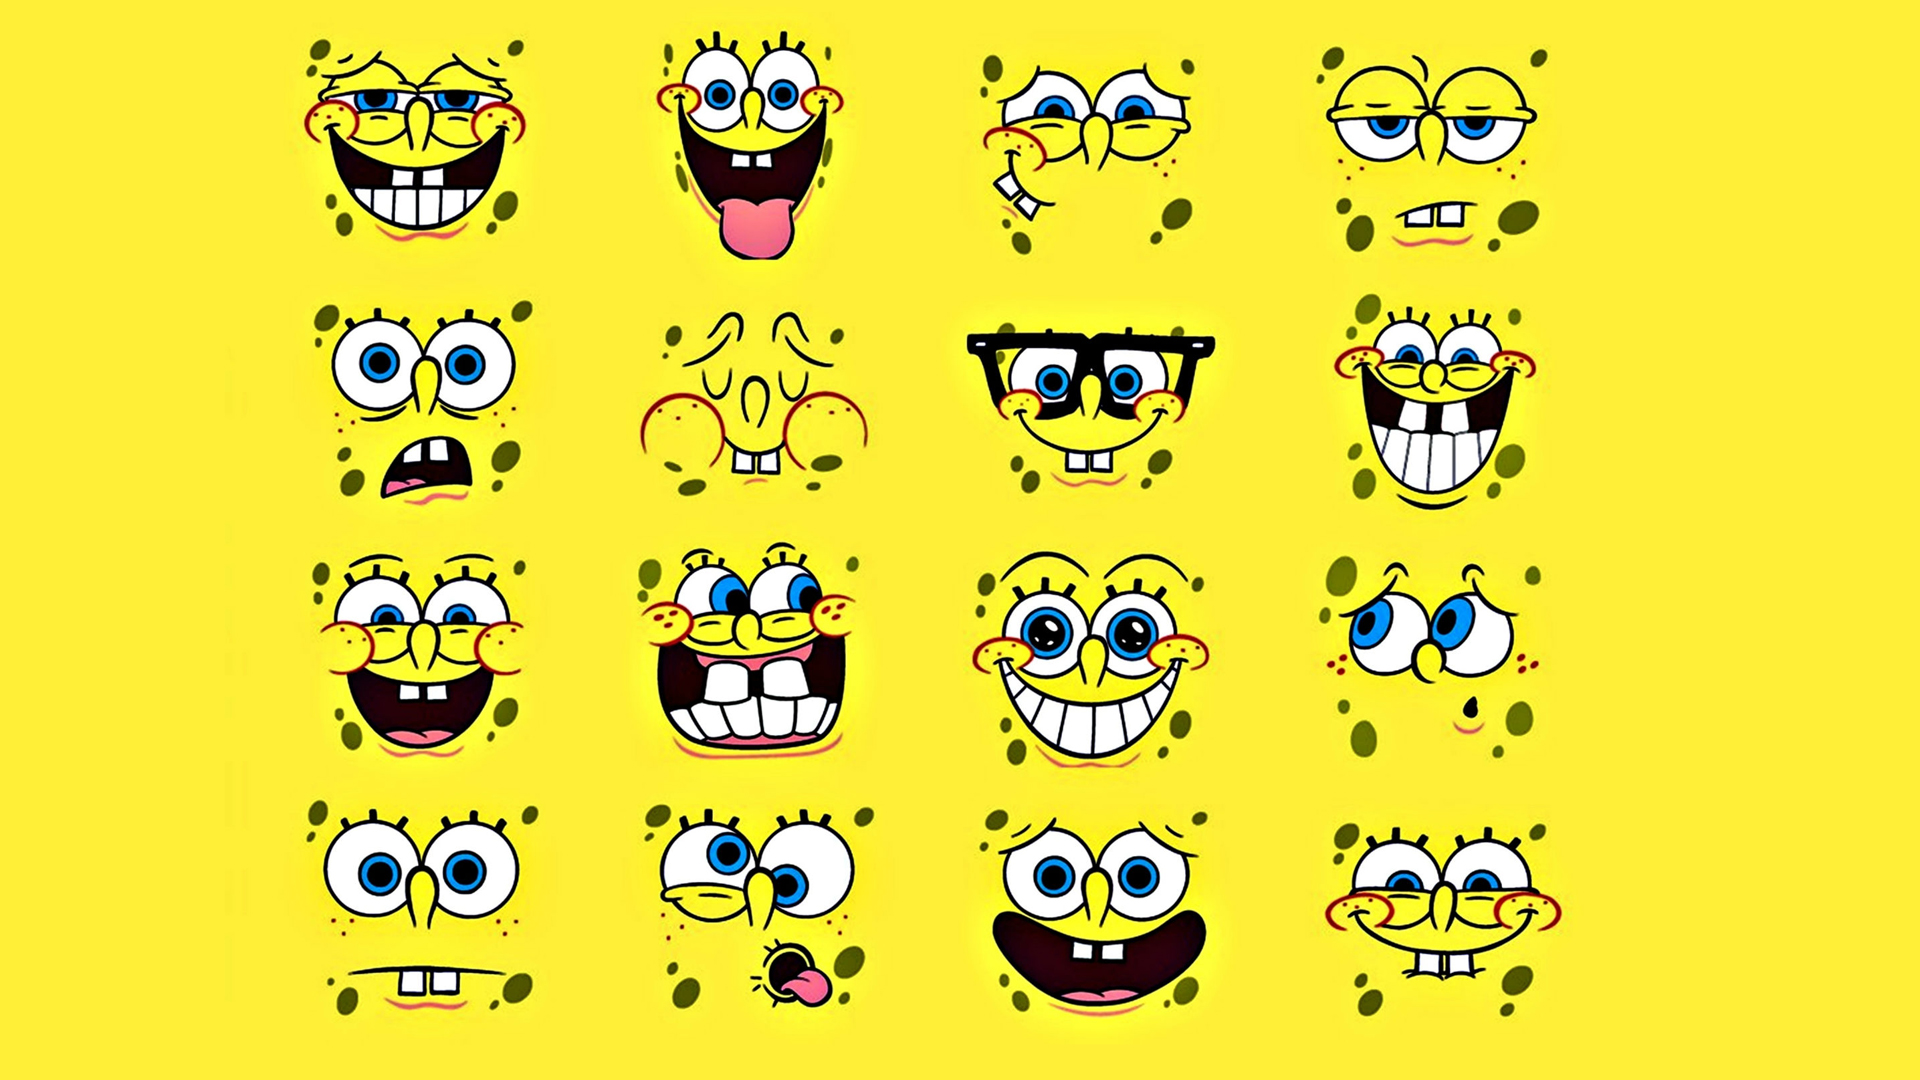 Spongebob Wallpaper 1920x1080